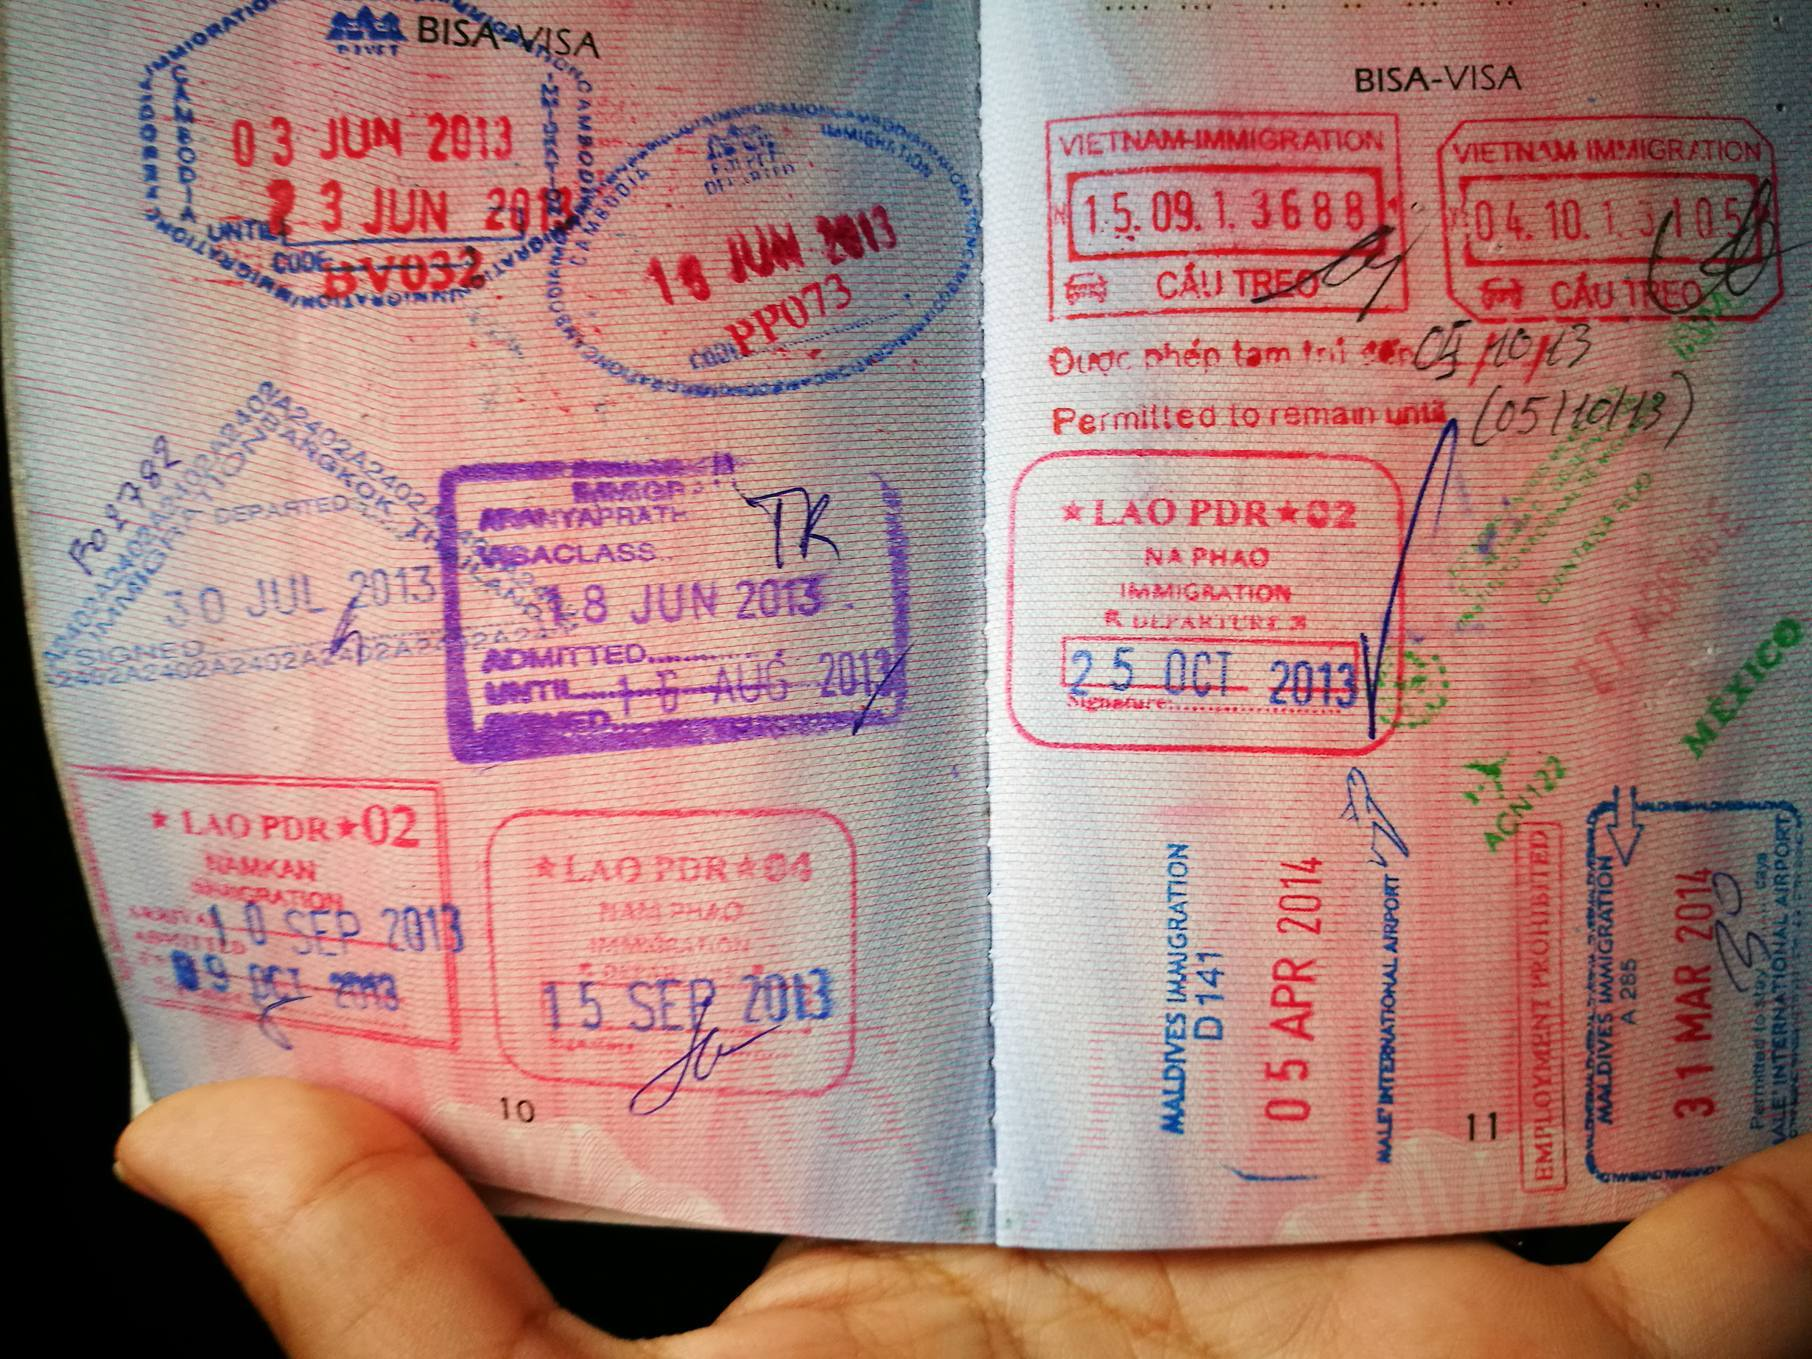 Some stamps on my philippines passport but you'll only get 2 stamps (Entry & exit) when you visit the schengen region no matter how many countries you'll visit in europe.